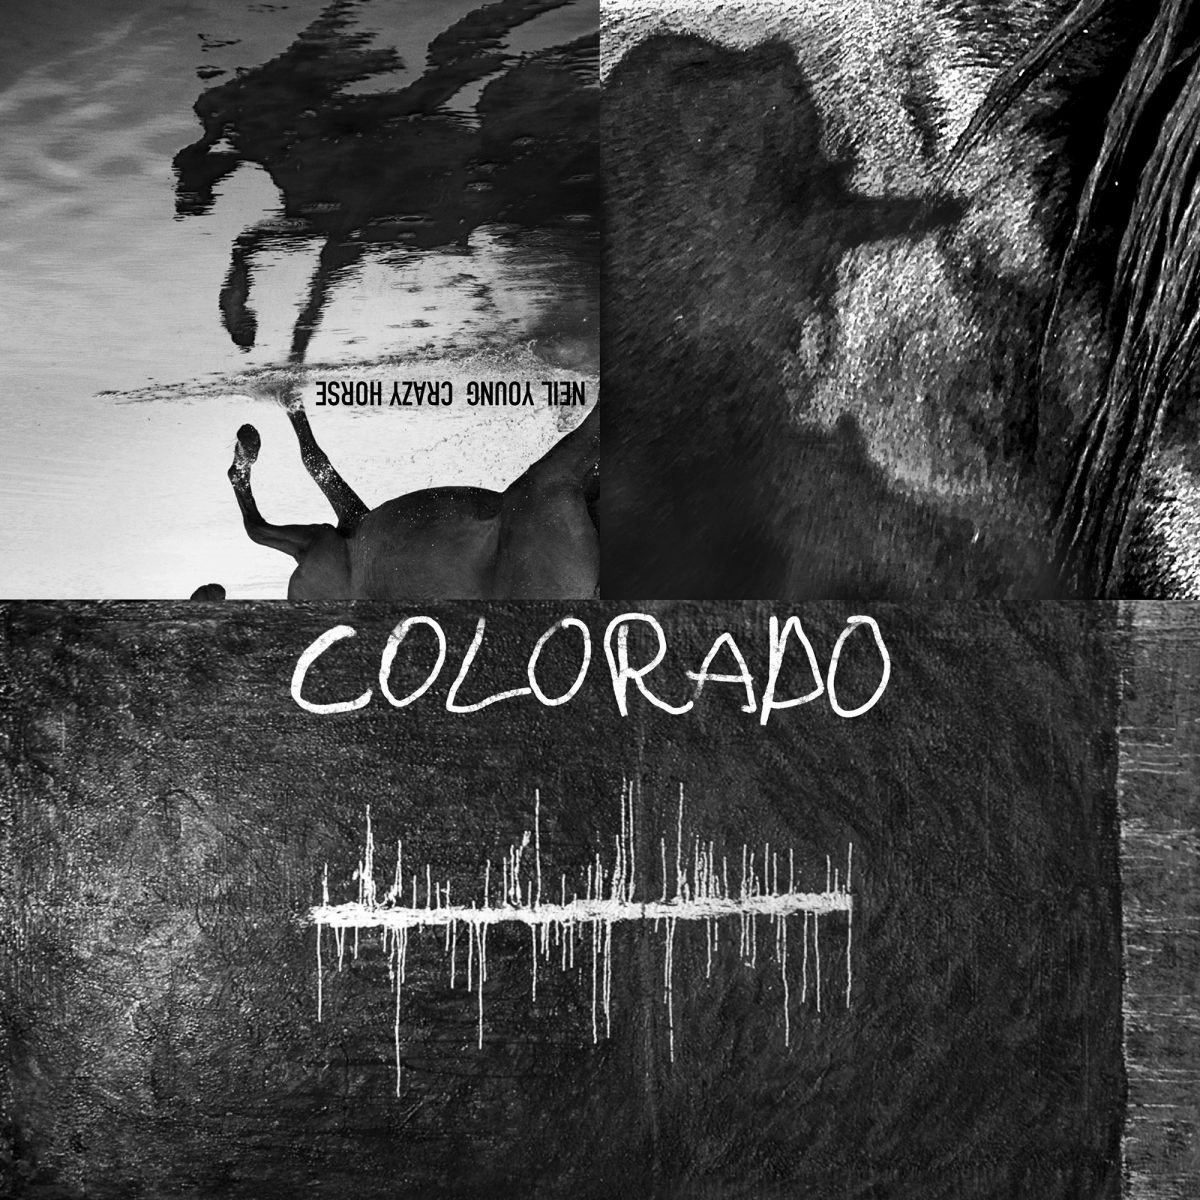 Colorado - Neil Young & Crazy Horse